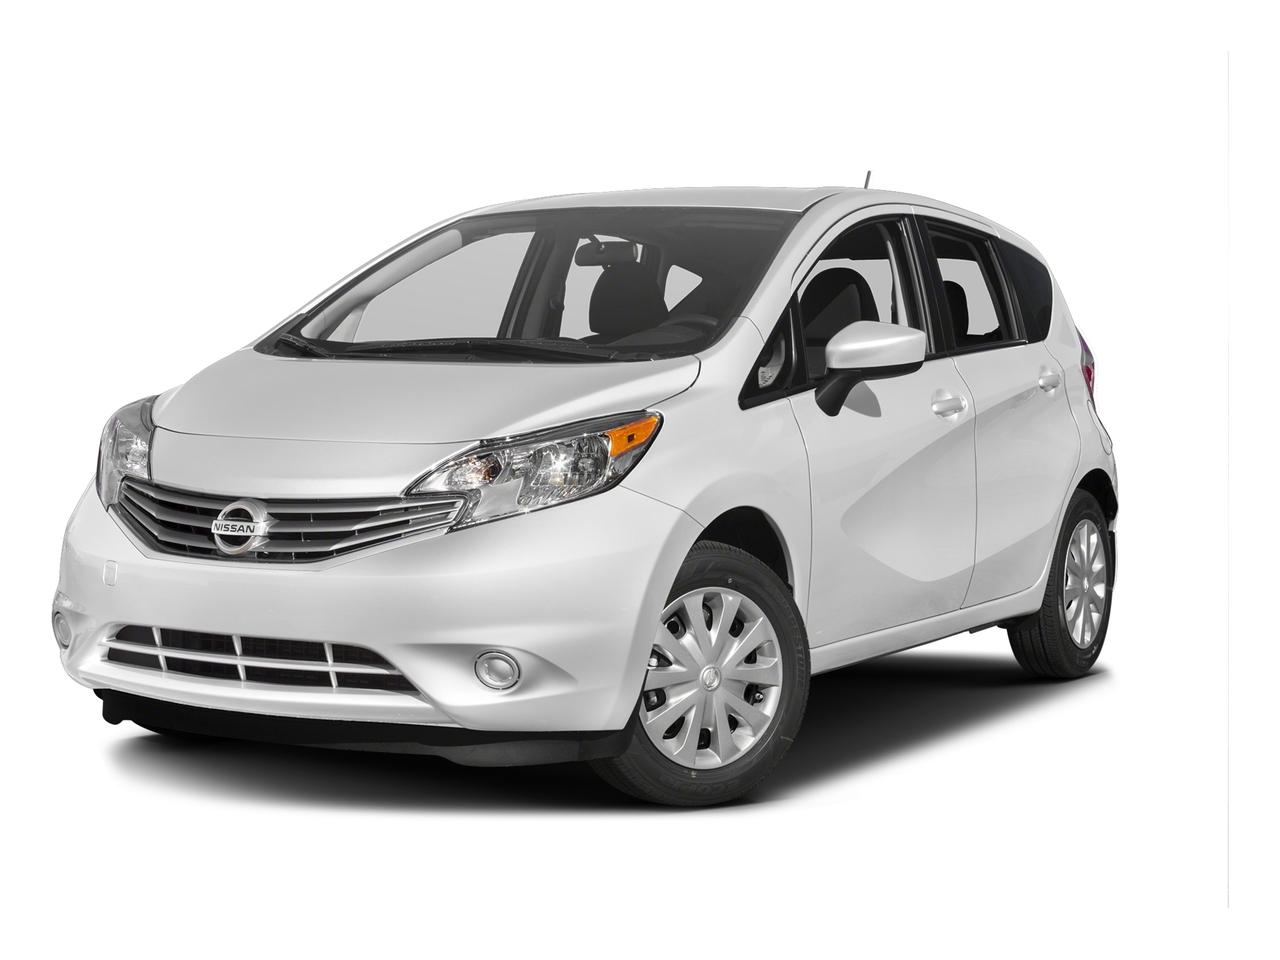 2016 Nissan Versa Note Vehicle Photo in Killeen, TX 76541